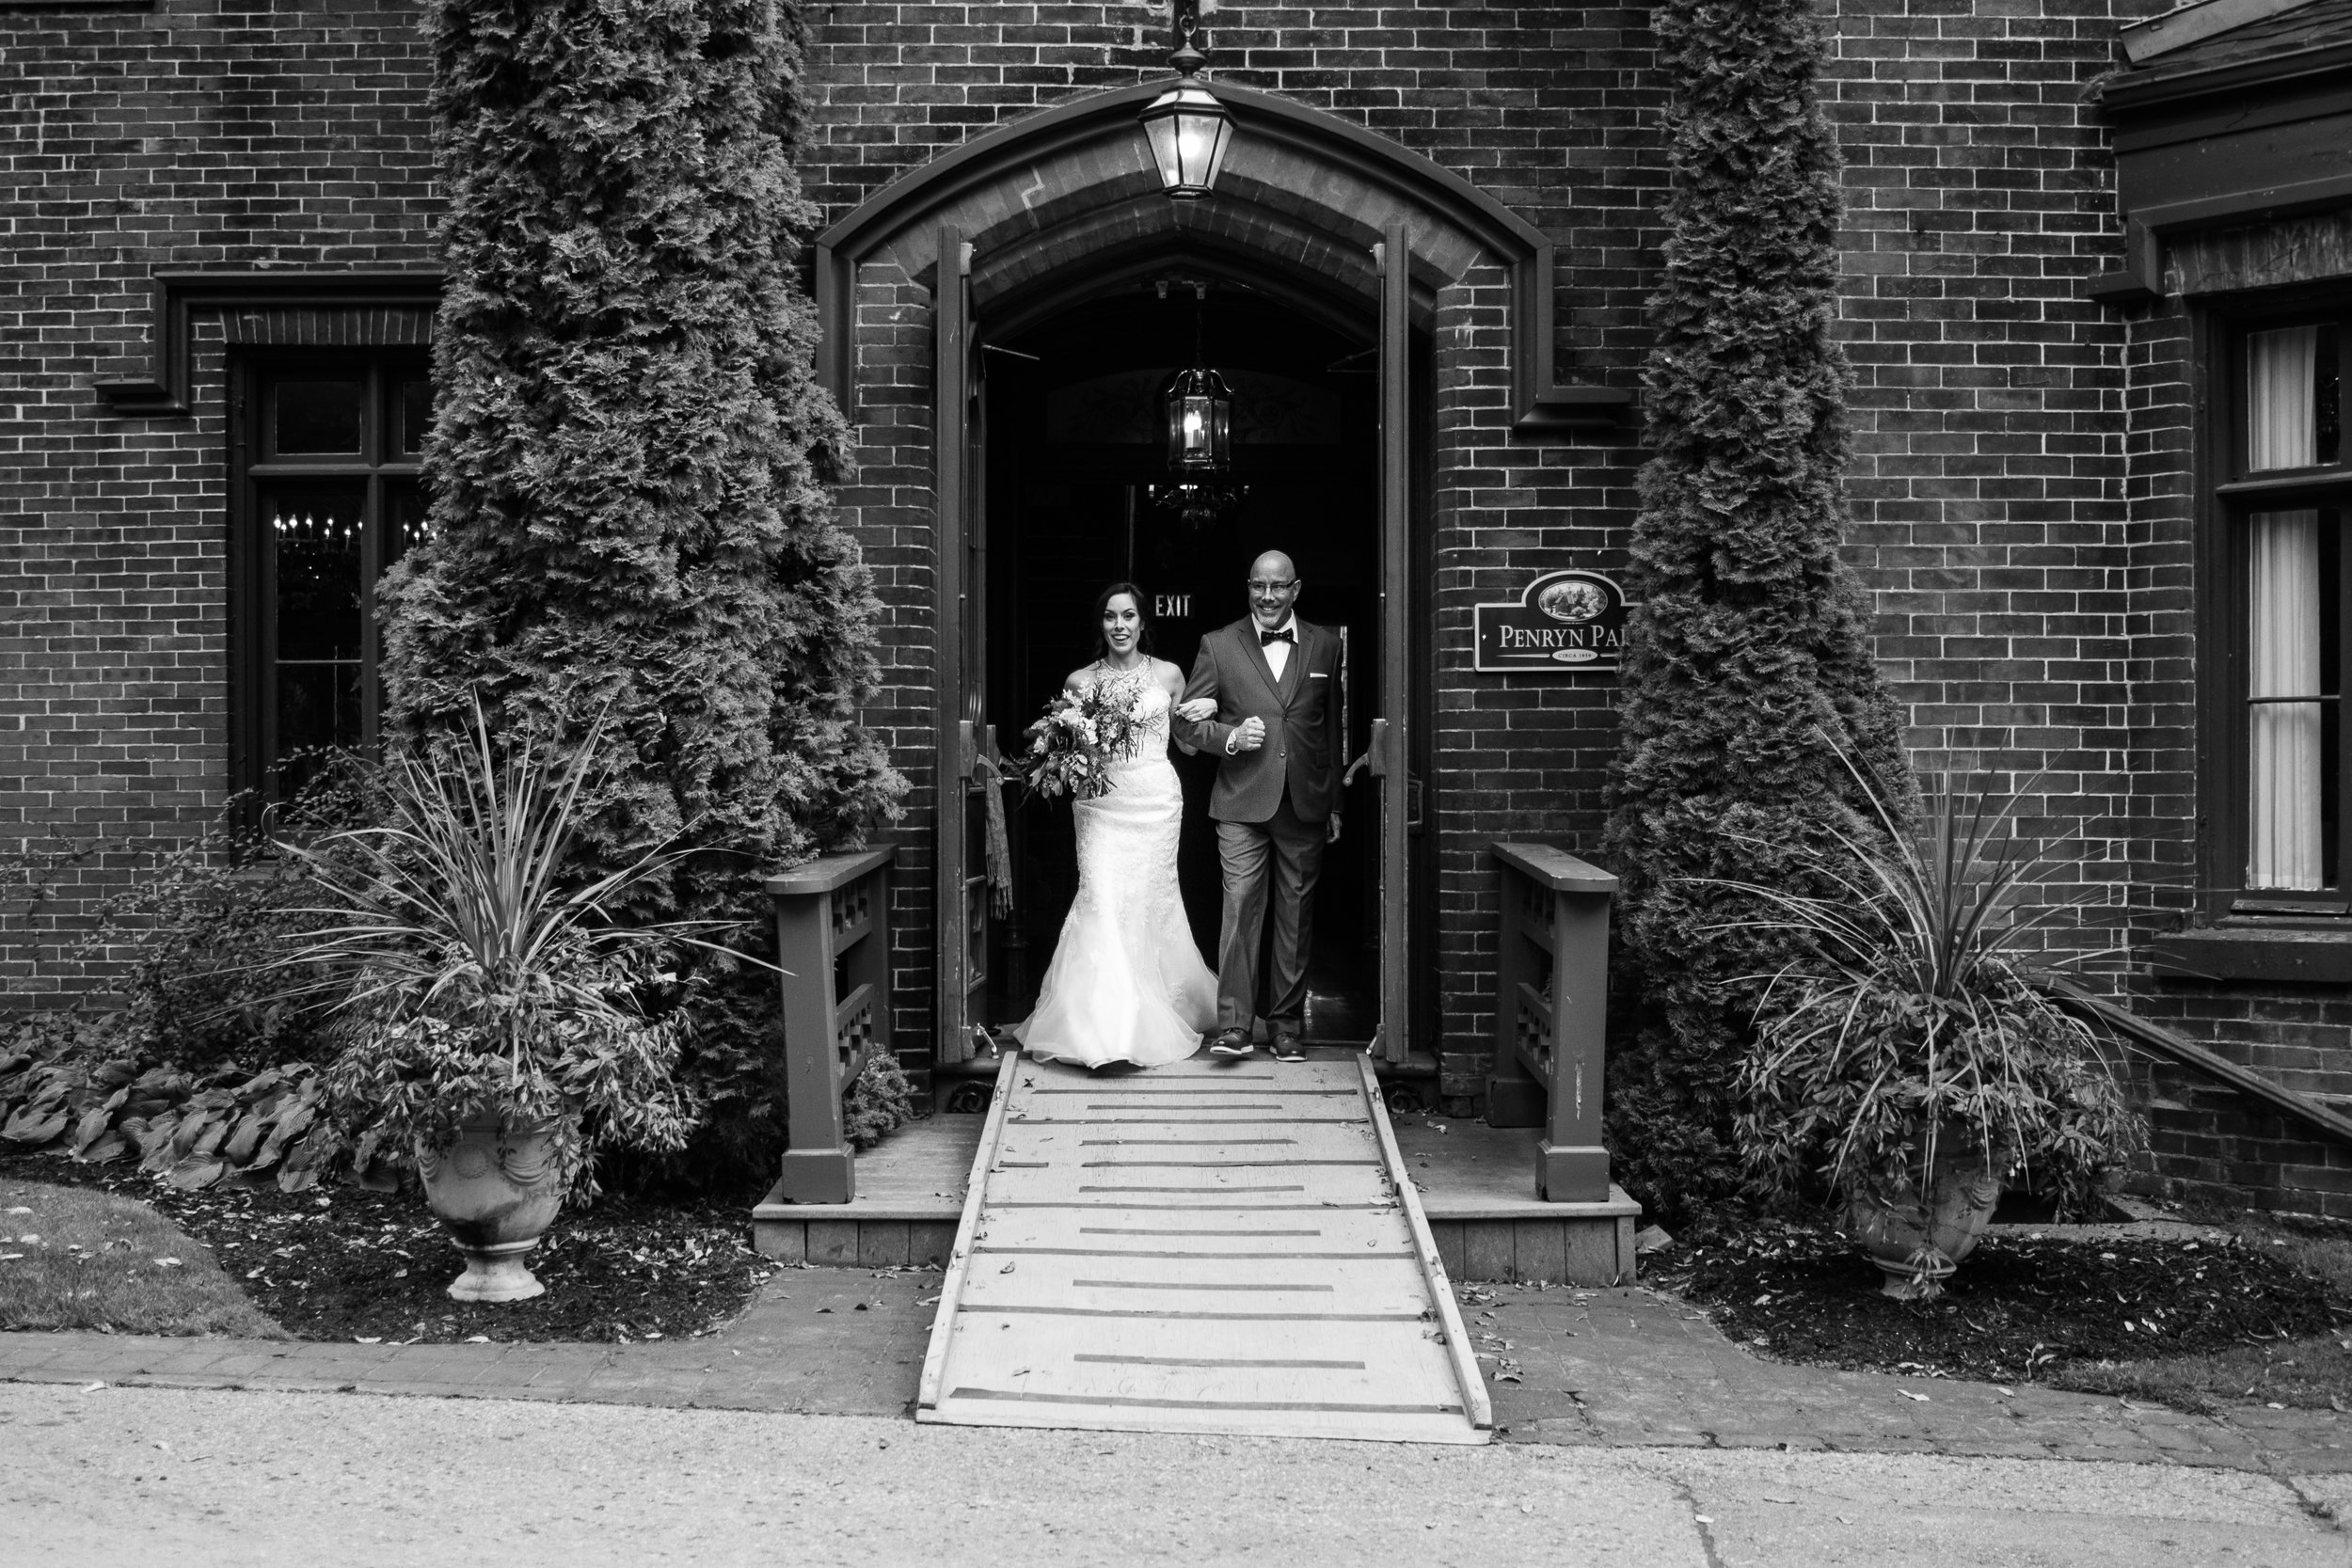 PenrynPark_Fall_Wedding-327.jpg